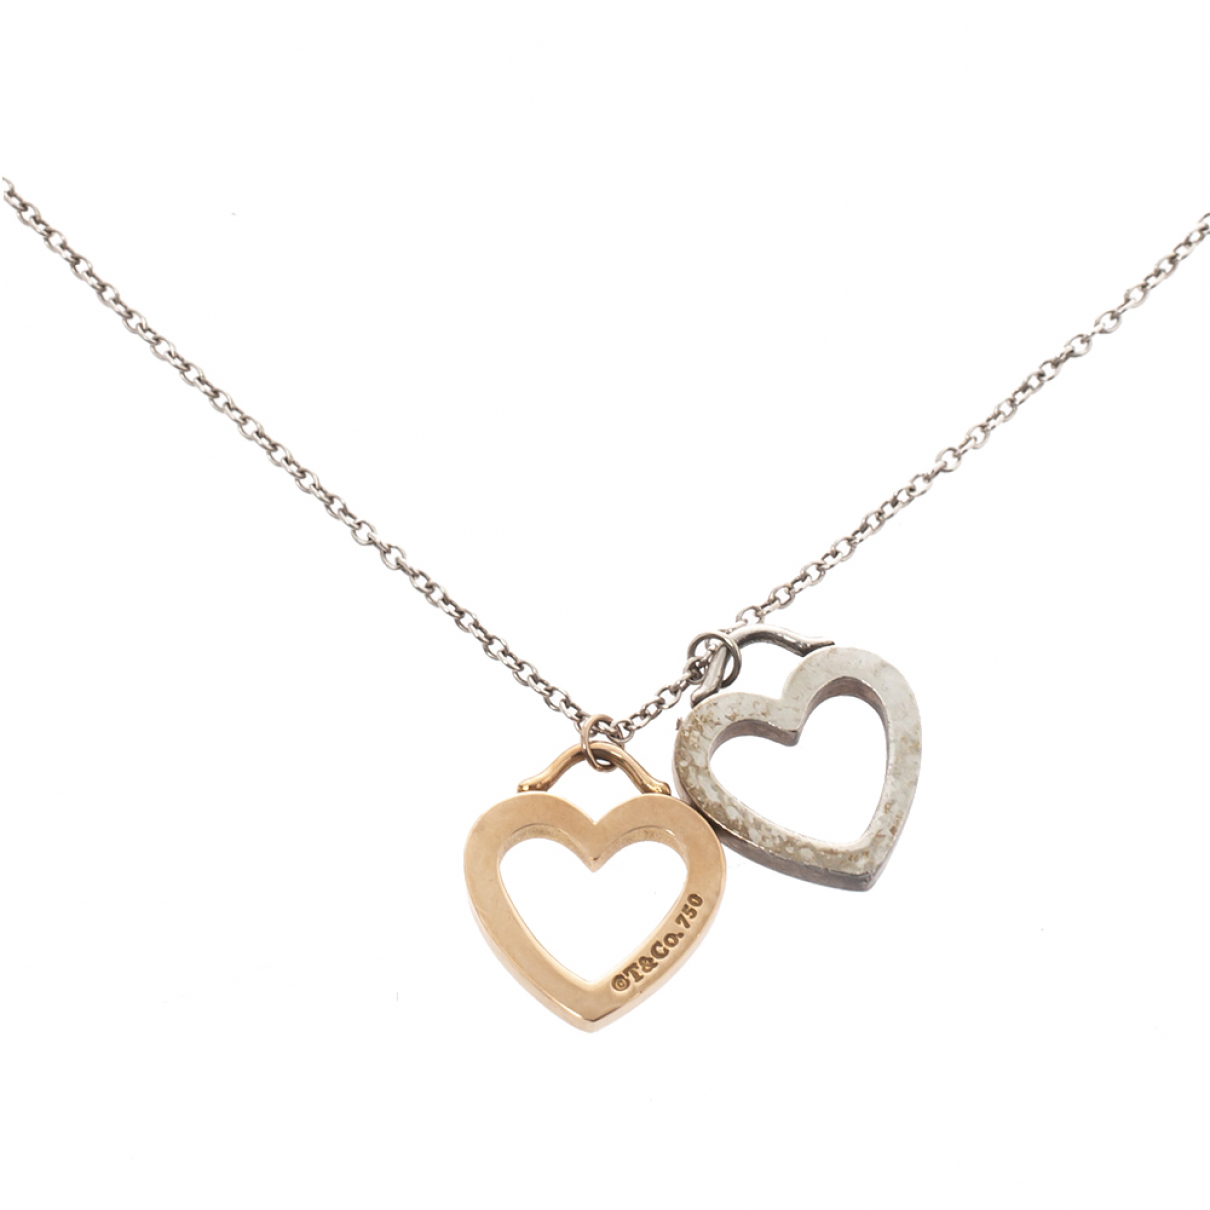 Tiffany & Co \N Silver necklace for Women \N